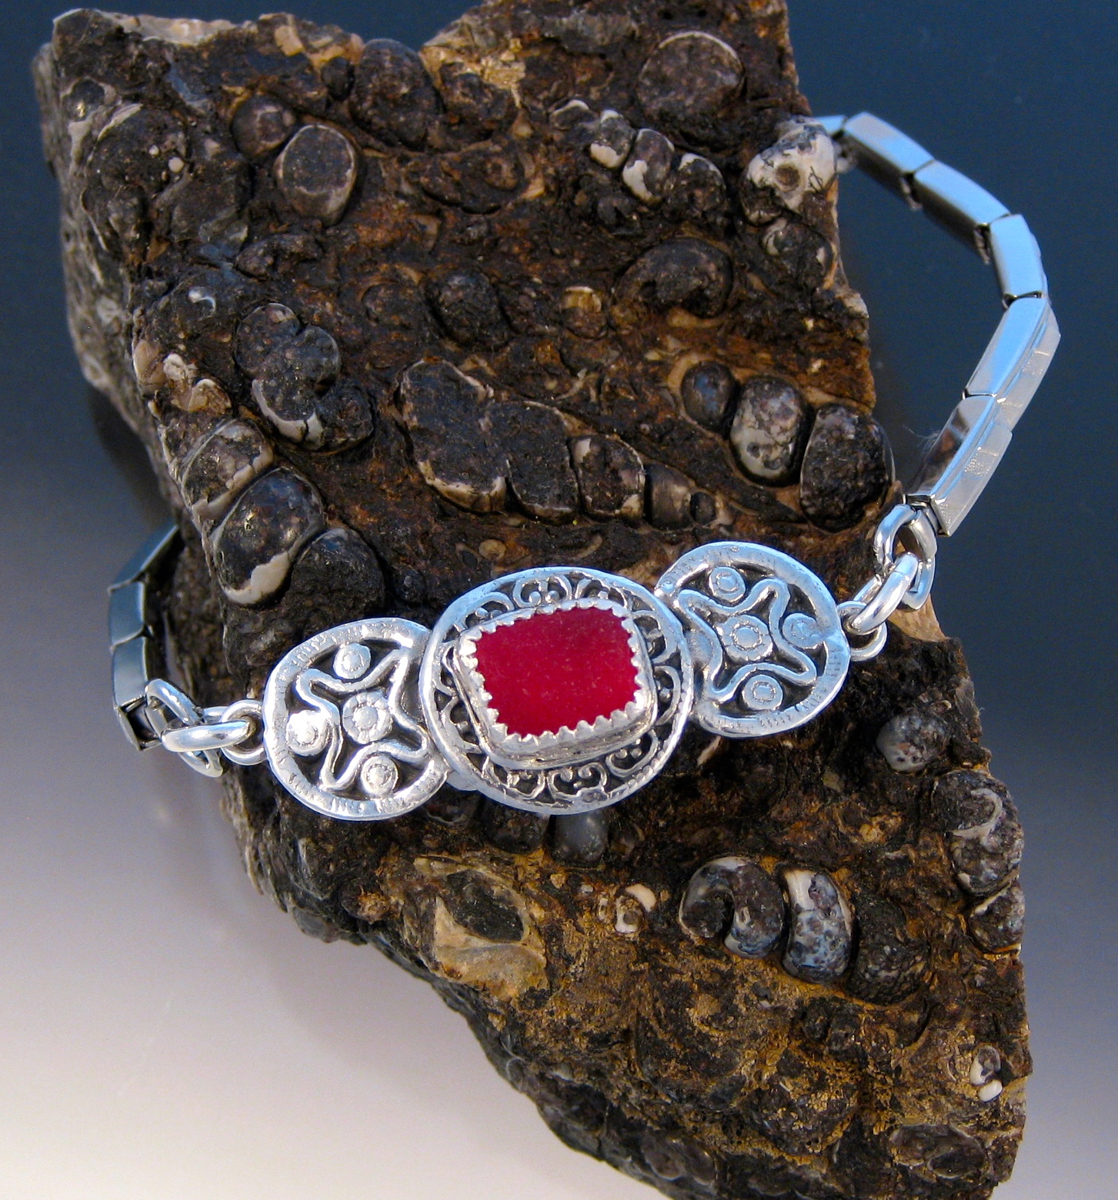 B241 - Rare bright red in vintage button bracelet (large view)